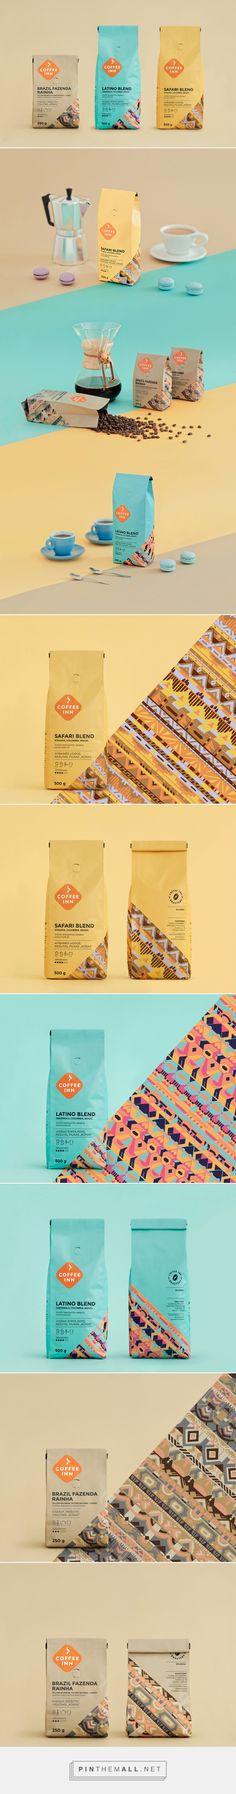 Coffee Inn Brand Packaging by Irmantas Savulionis on Behance | Fivestar Branding – Design and Branding Agency & Inspiration Gallery